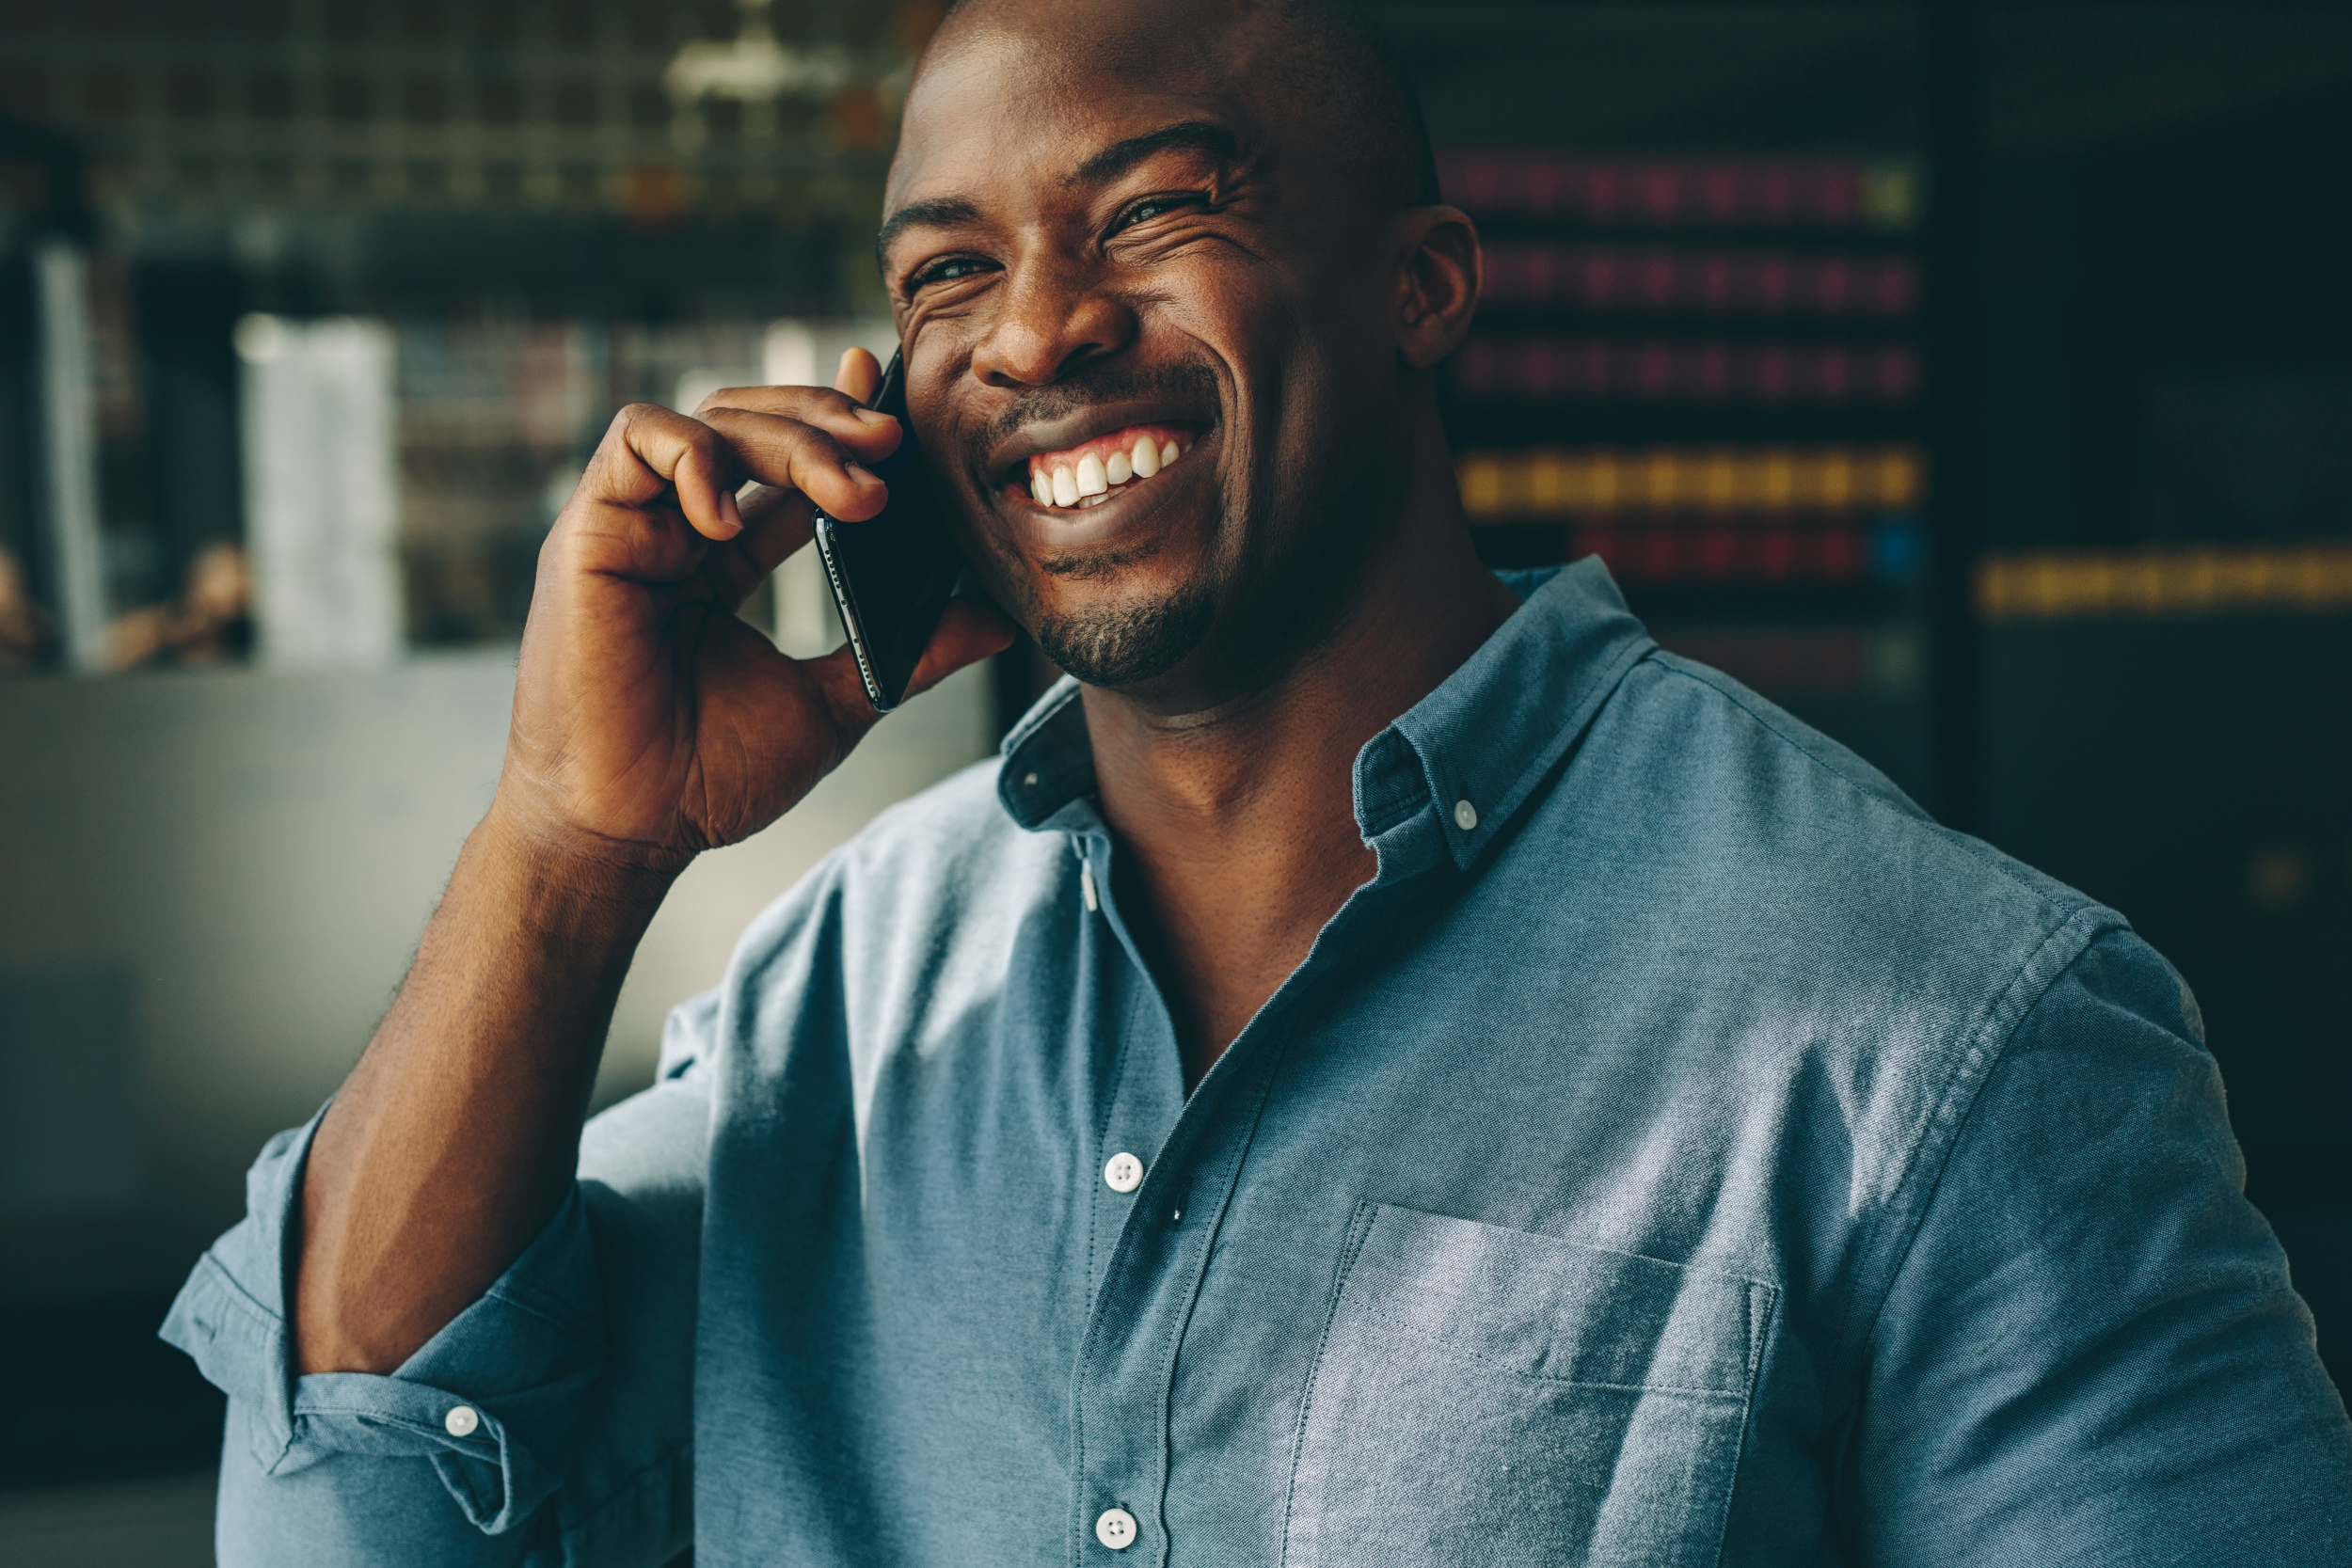 A confident, handsome black man speaks on the phone with a consultant about his business exit strategy